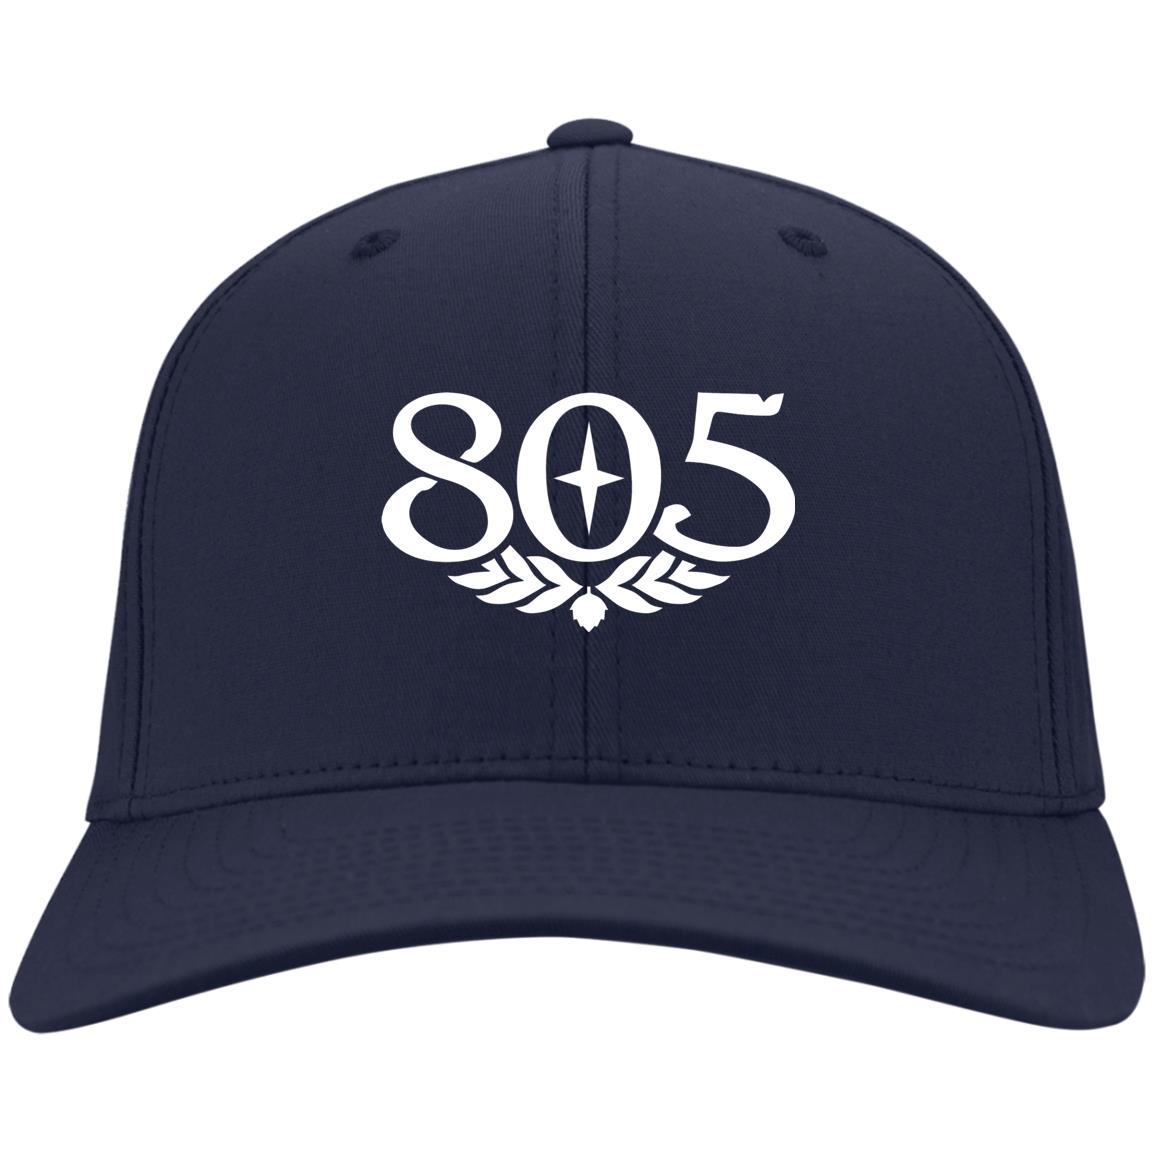 805 Beer - Port & Co. Twill Cap Navy